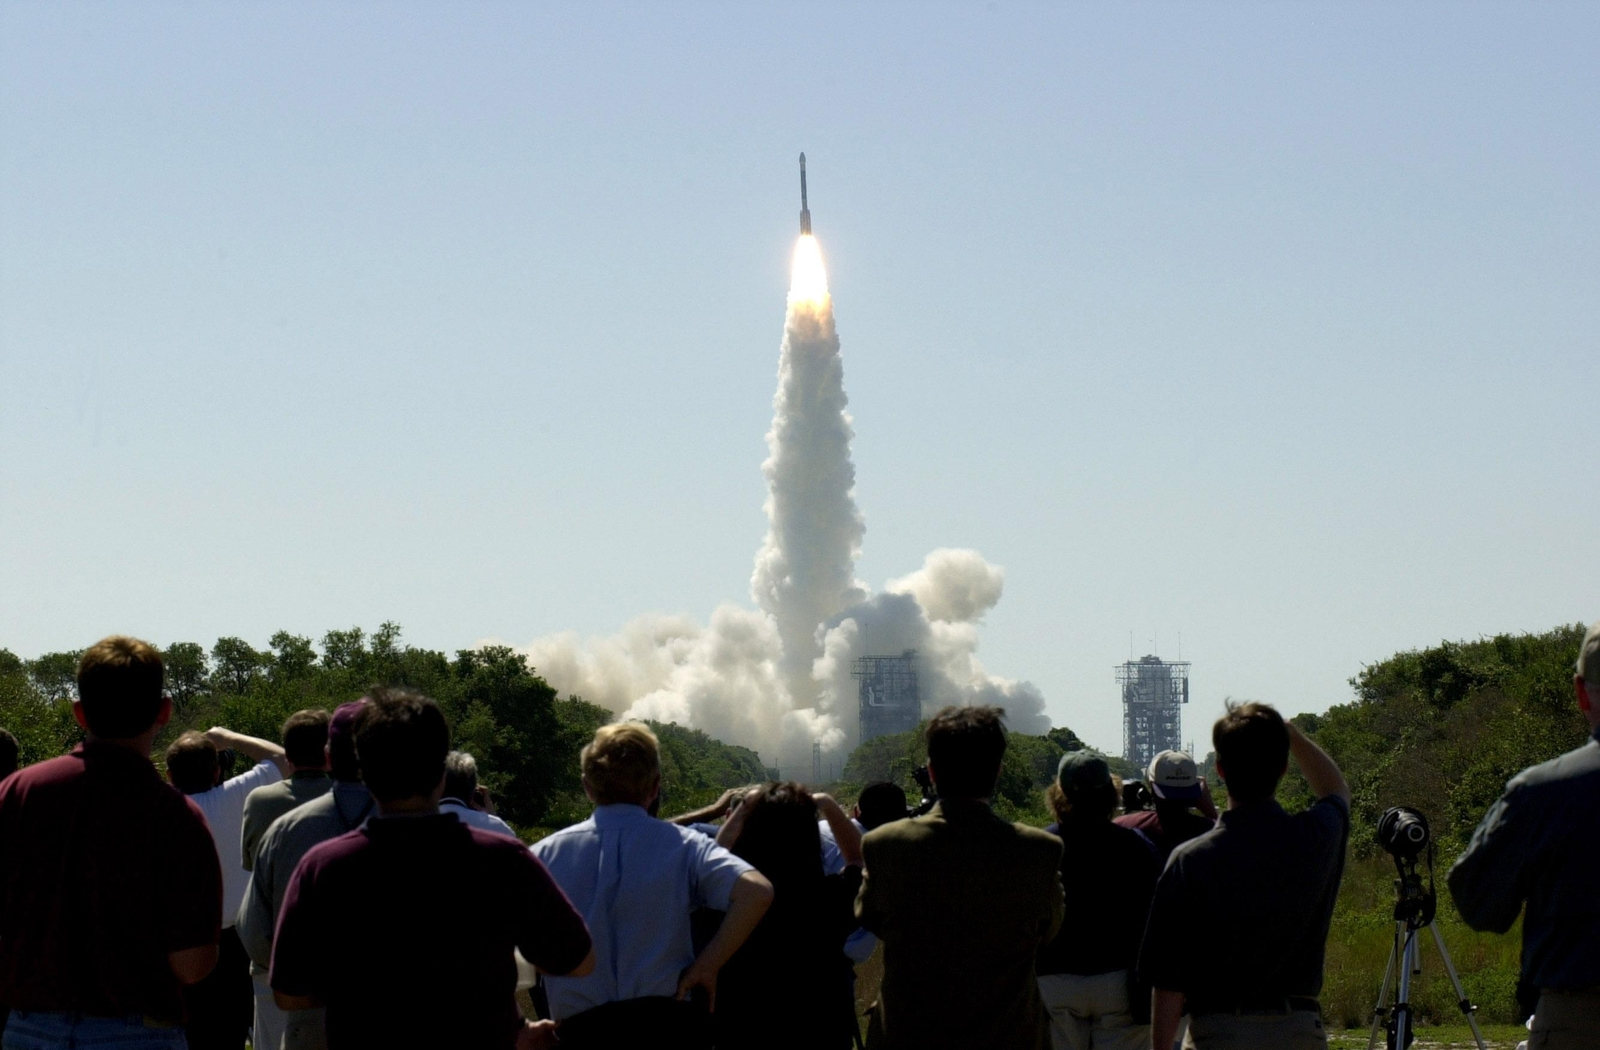 Odyssey's Launch to Mars on April 7, 2001